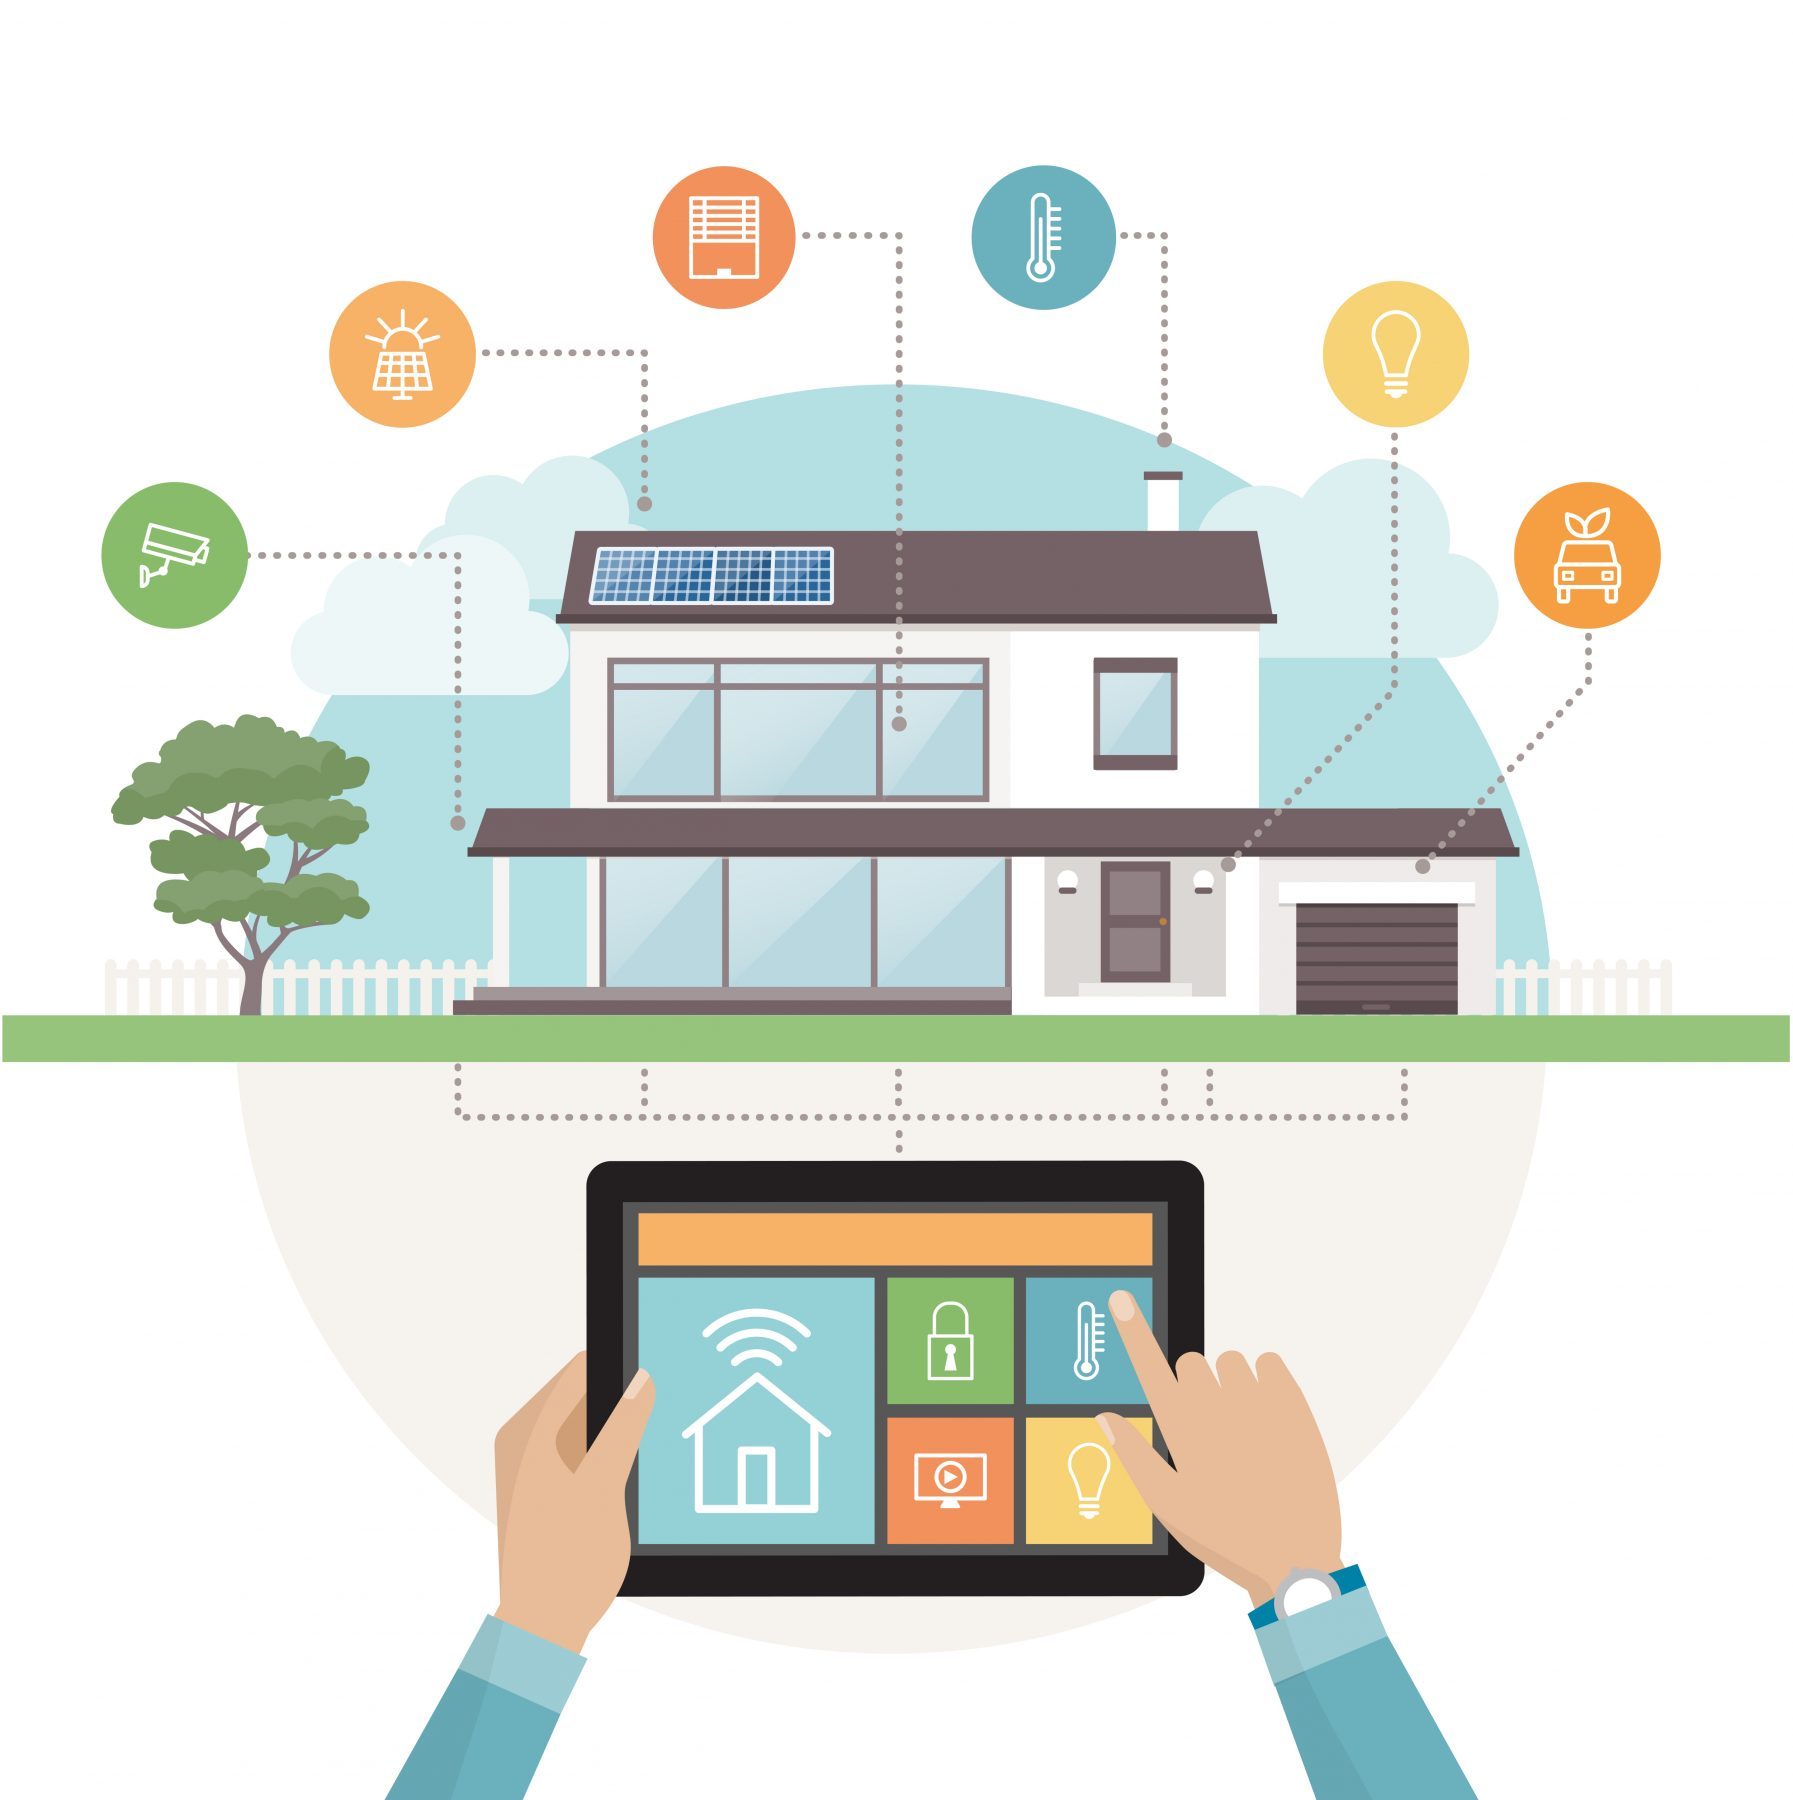 Smart Homes - SMARTHOMEWORKS